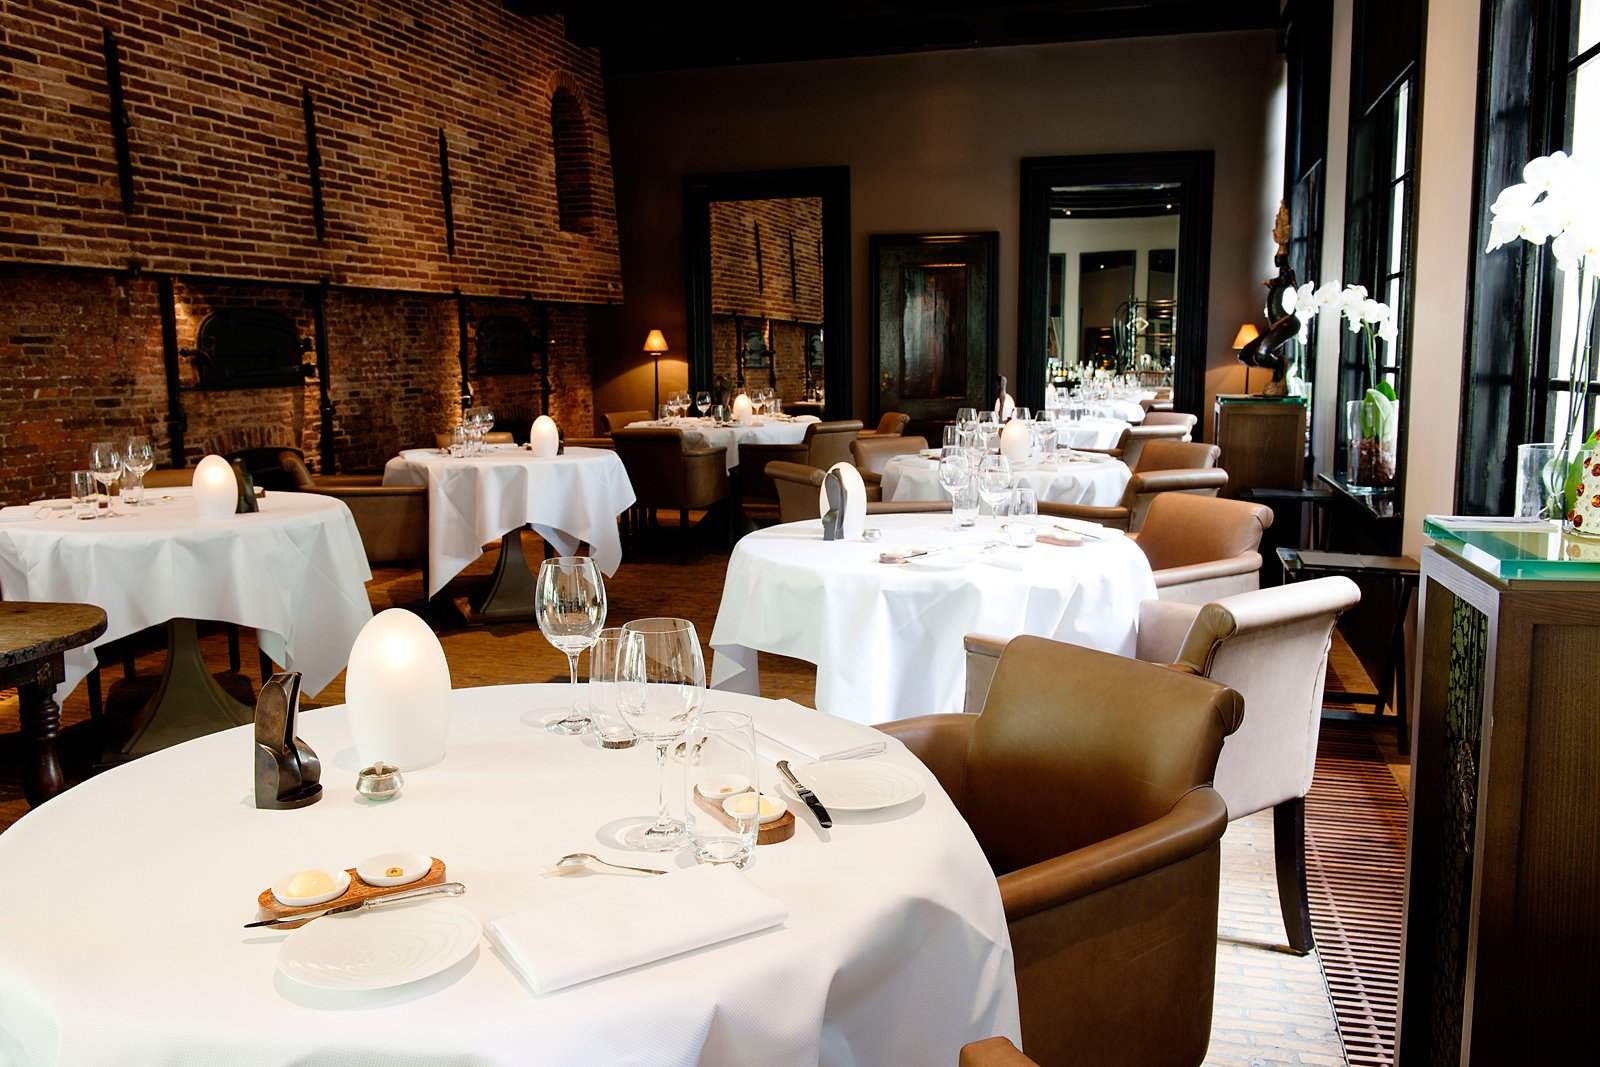 """The hotel's elegant Michelin-starred restaurant, Vinkeles, was formerly a bakery, in operation between 1787 to 1811 and run by the """"Catholic Old and Poor People's Office."""" The sunken dining room is surrounded by original 18th century ovens.  The Dylan, Amsterdam by Jaime Gillin"""